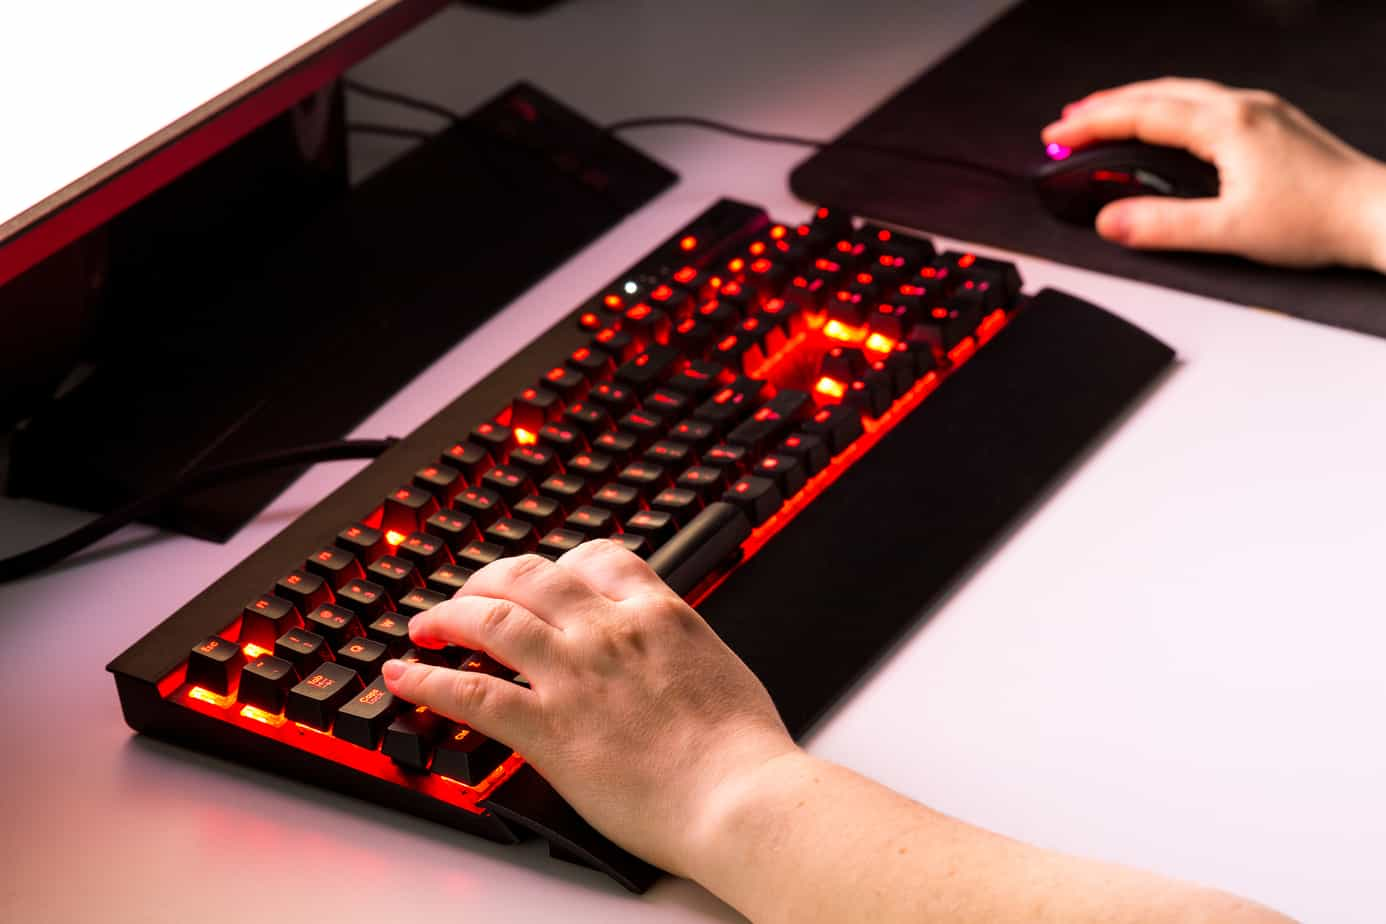 Female hands on keyboard playing computer game with gaming gear.